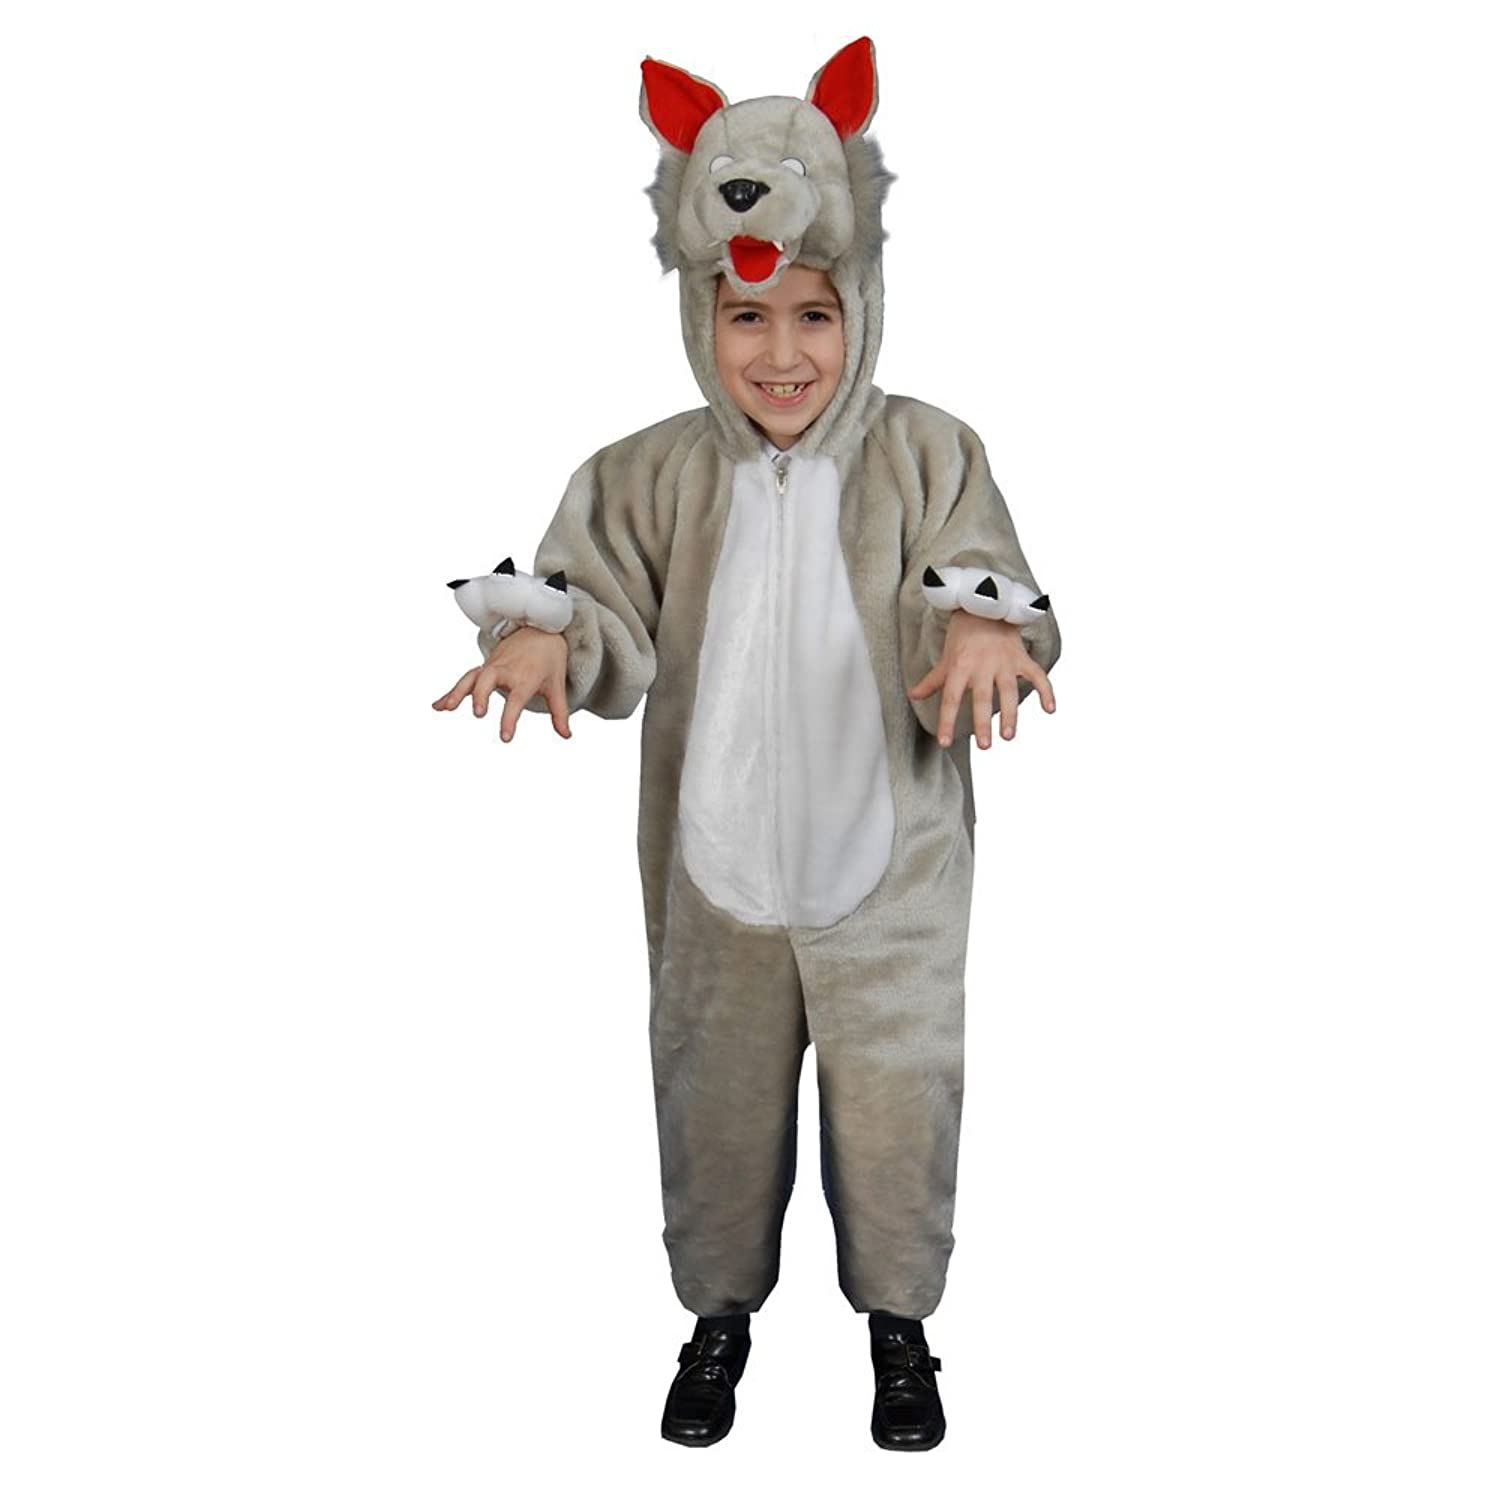 Little Kids Plush Wolf Costume By Dress Up America